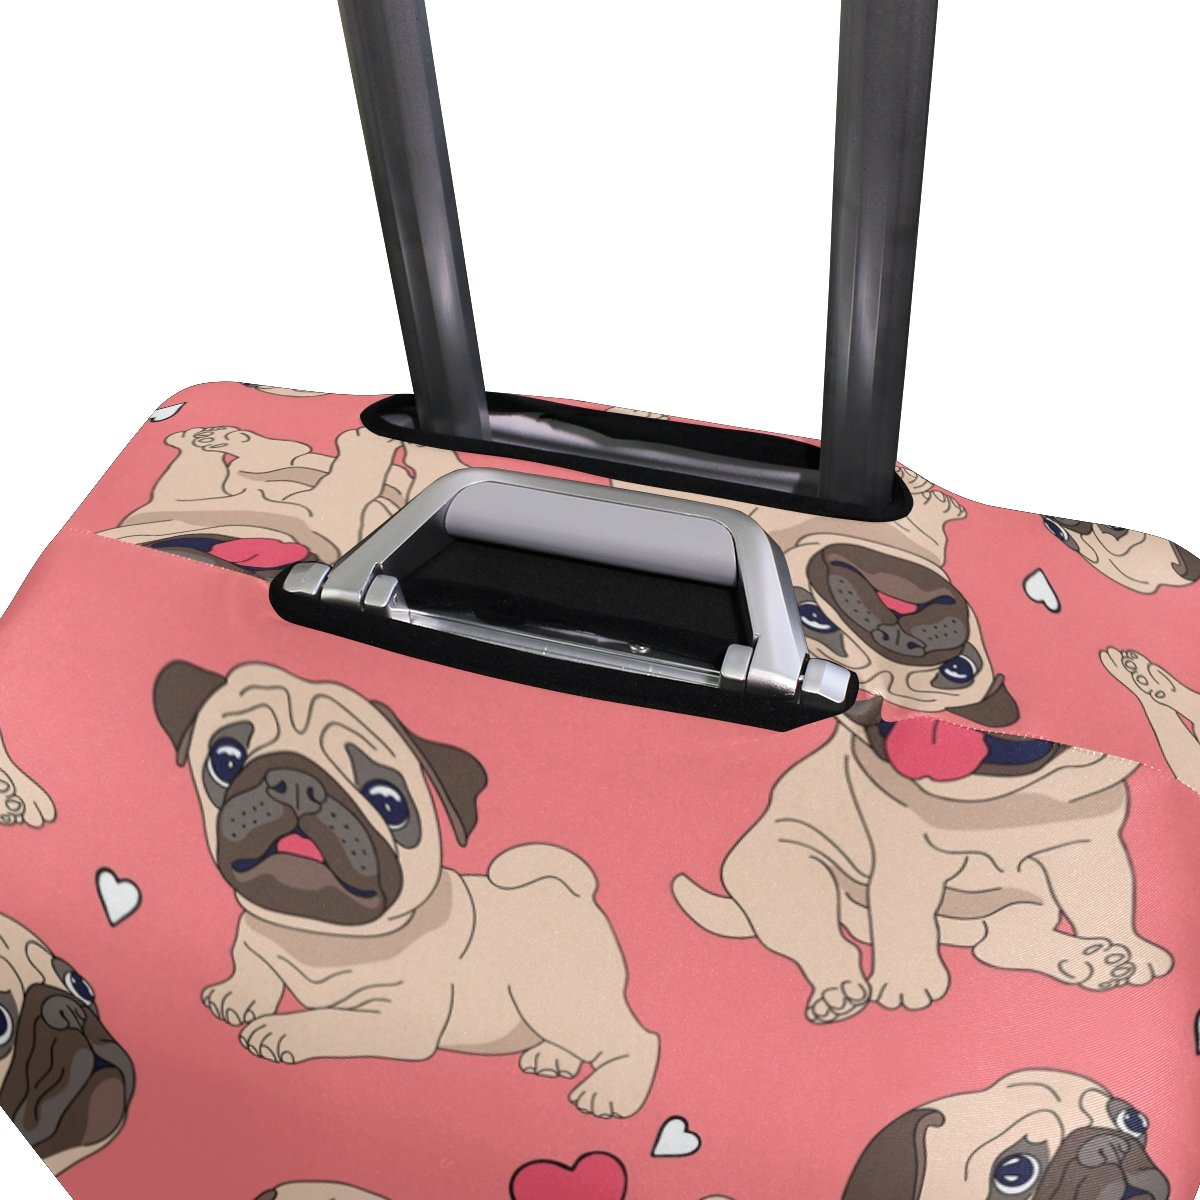 Cute Dog Puppy Love Heart Suitcase Luggage Cover Protector for Travel Kids Men Women by ALAZA (Image #3)